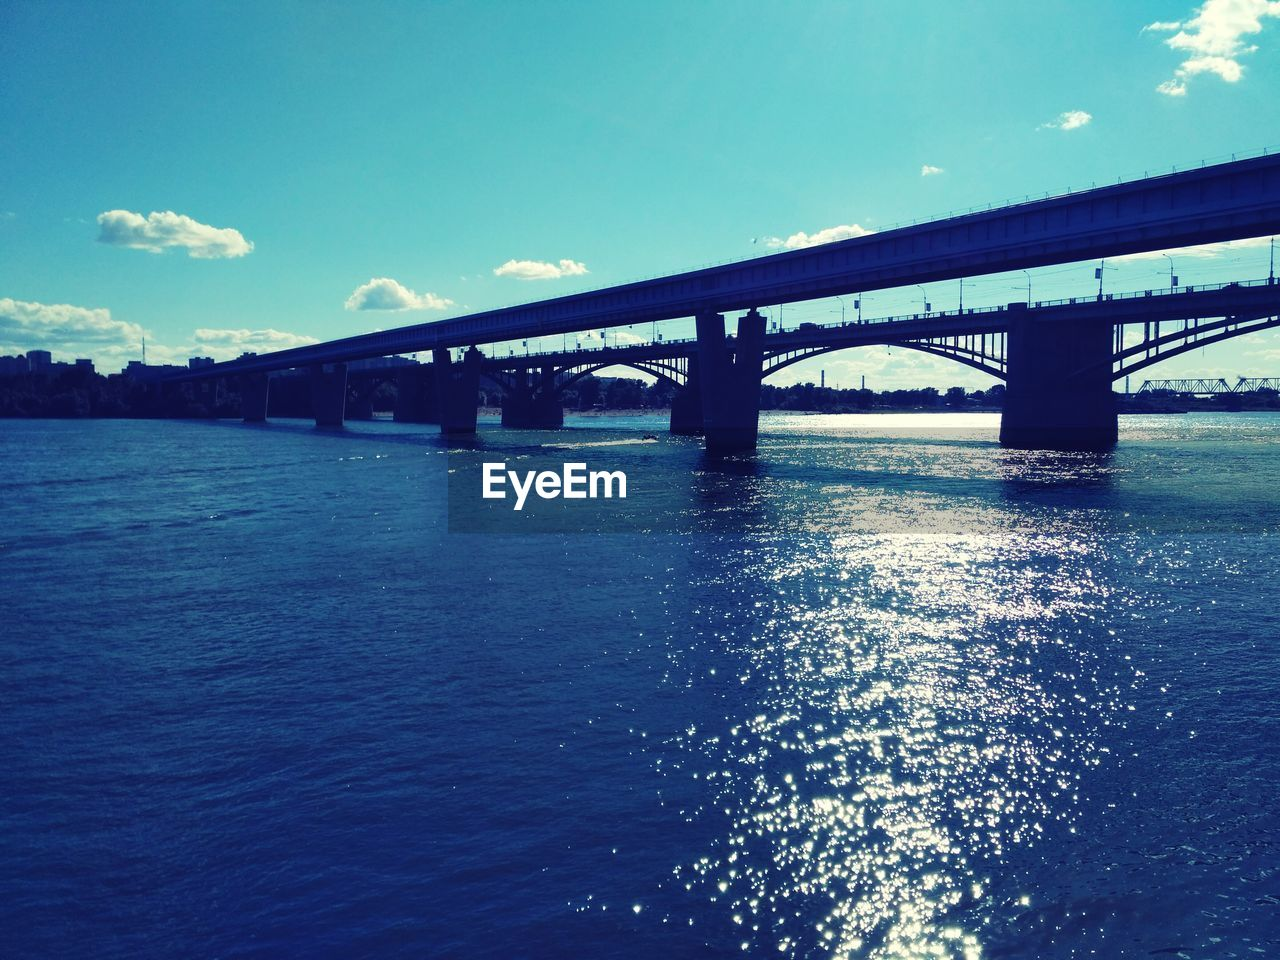 bridge - man made structure, connection, engineering, architecture, built structure, transportation, bridge, river, water, sky, no people, outdoors, below, nature, day